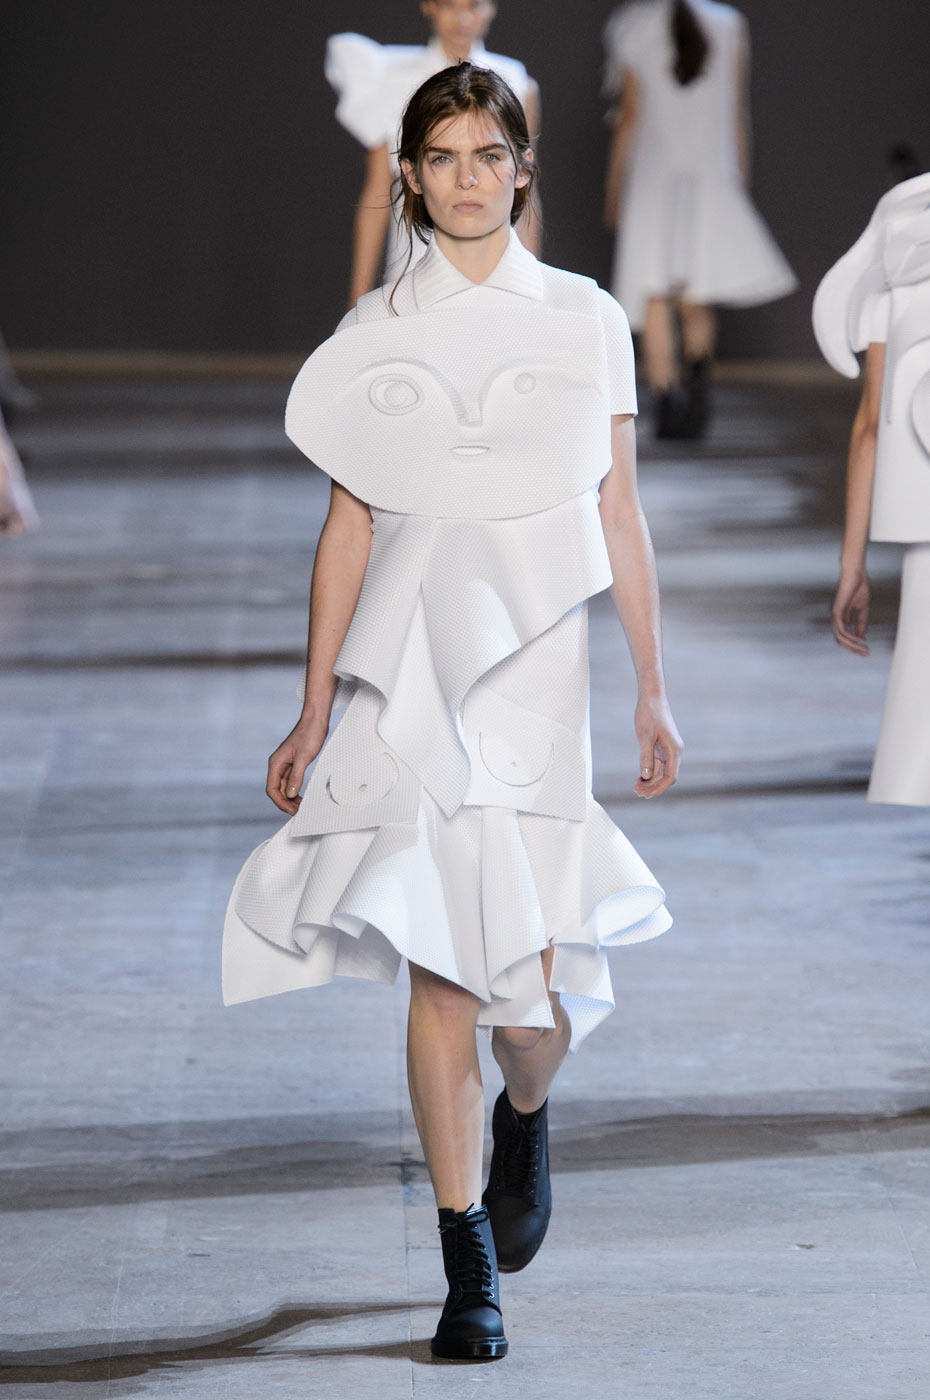 Viktor & Rolf Experiment with Cubism for Spring 2016 Couture